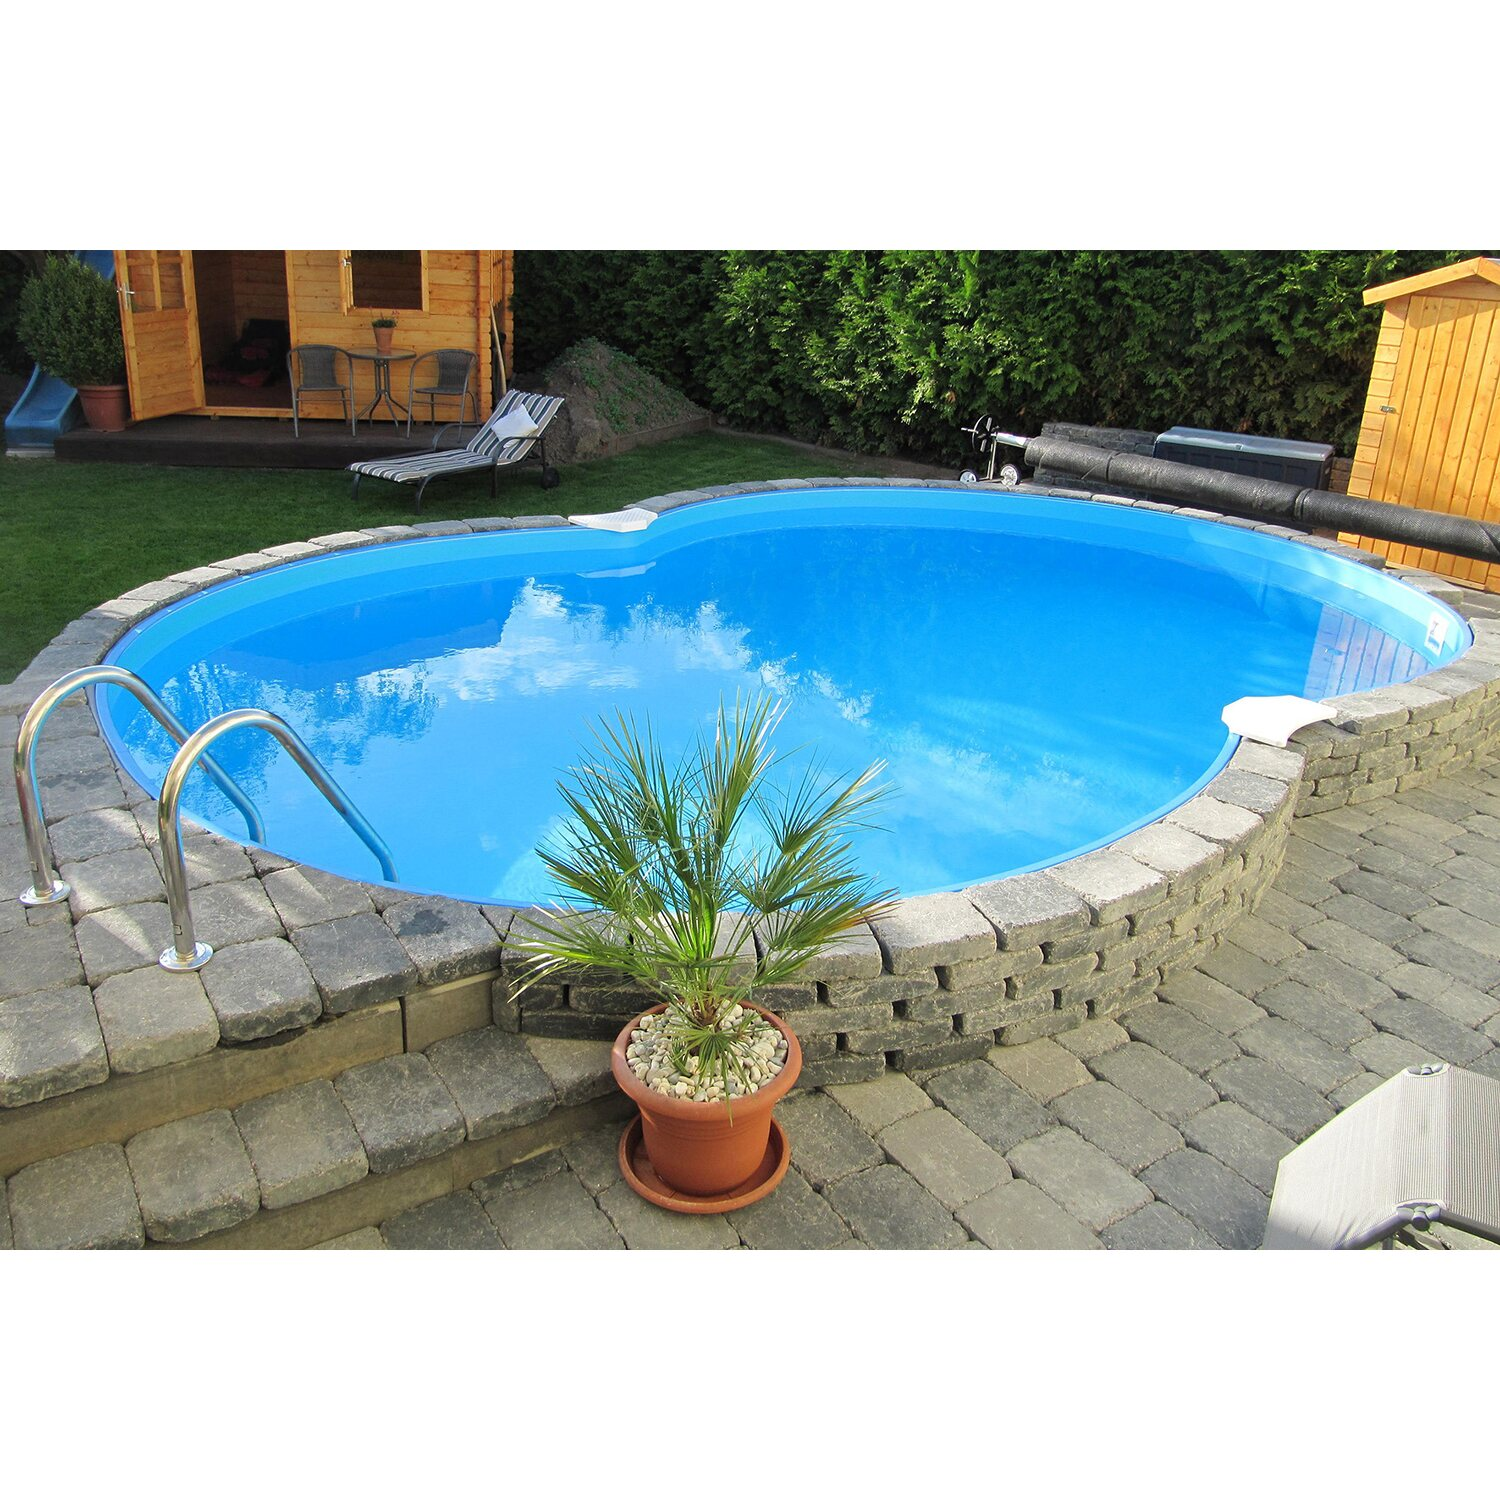 Pool set cannes halbhoch einbaubecken achtform 625 cm x for Garten pool 3m